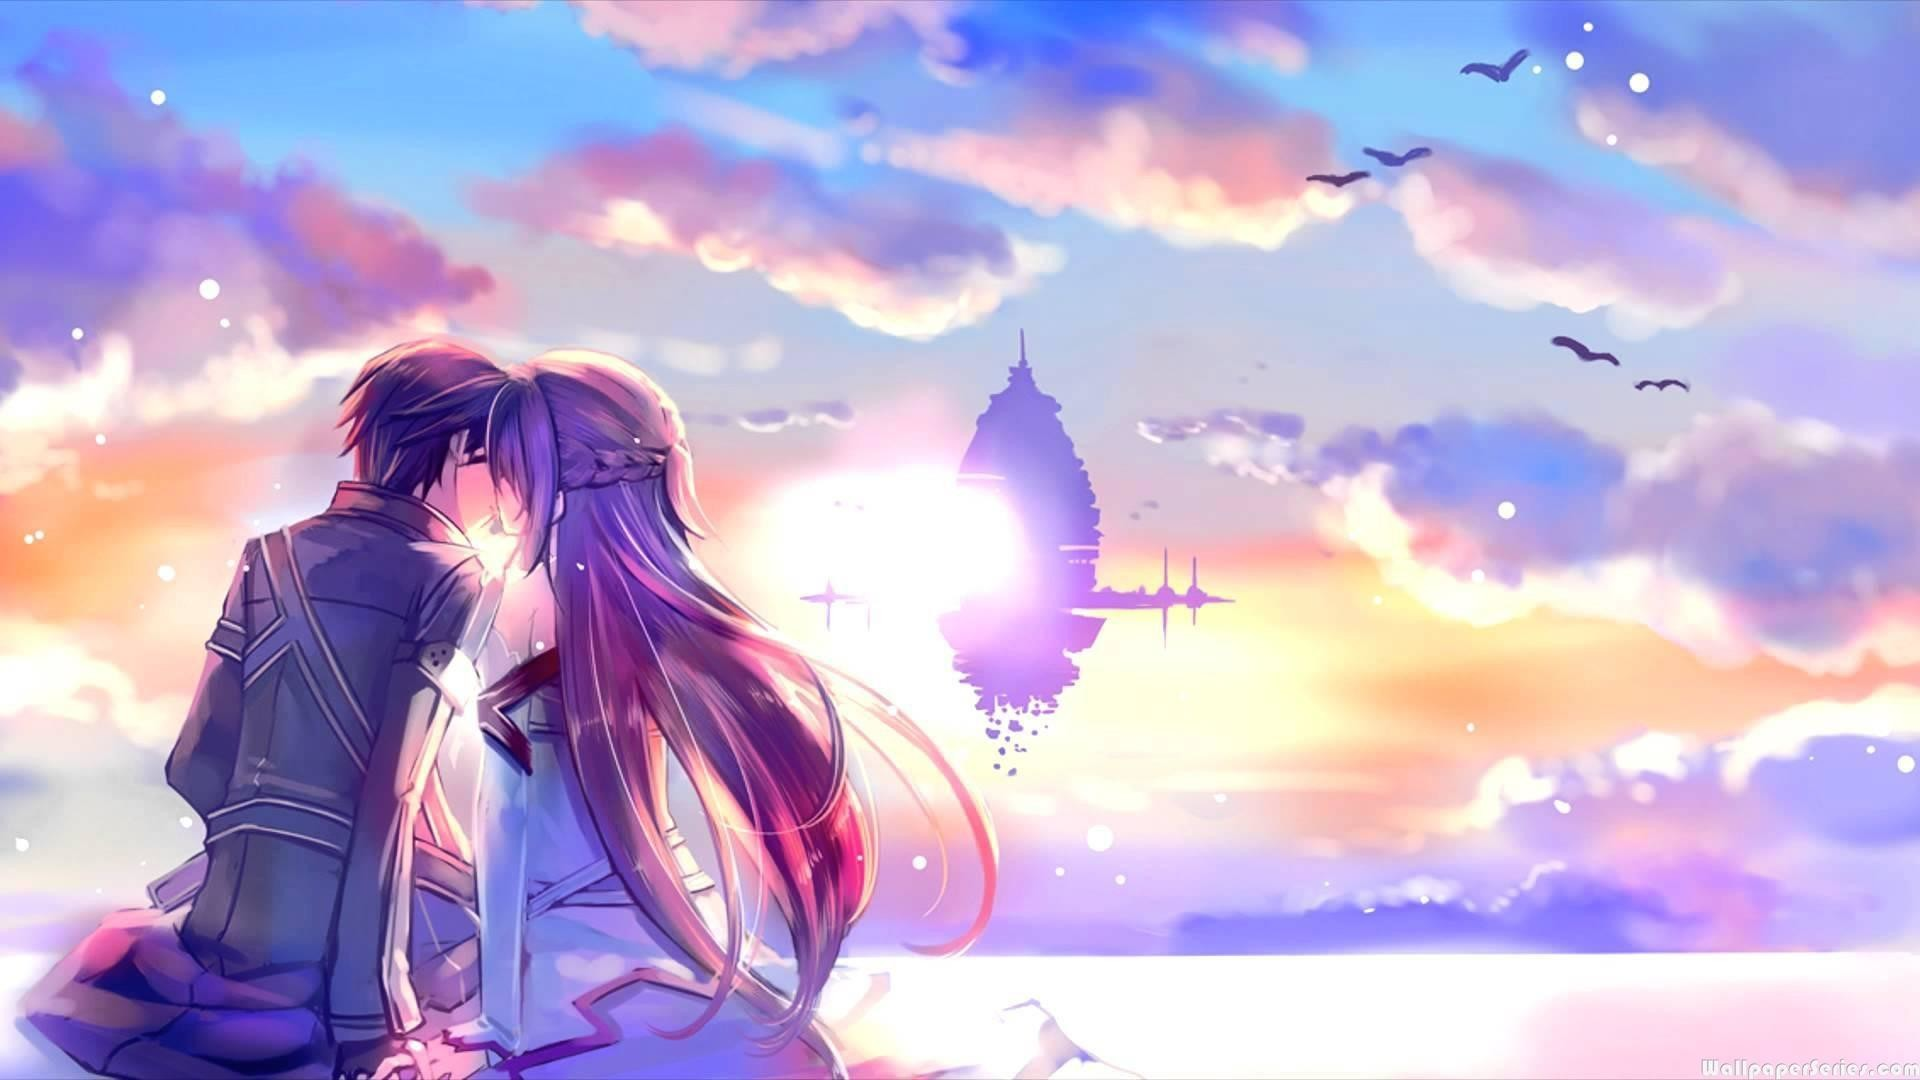 1920x1080 HD Asuna and Kirito Kiss Sword Art Online Wallpaper